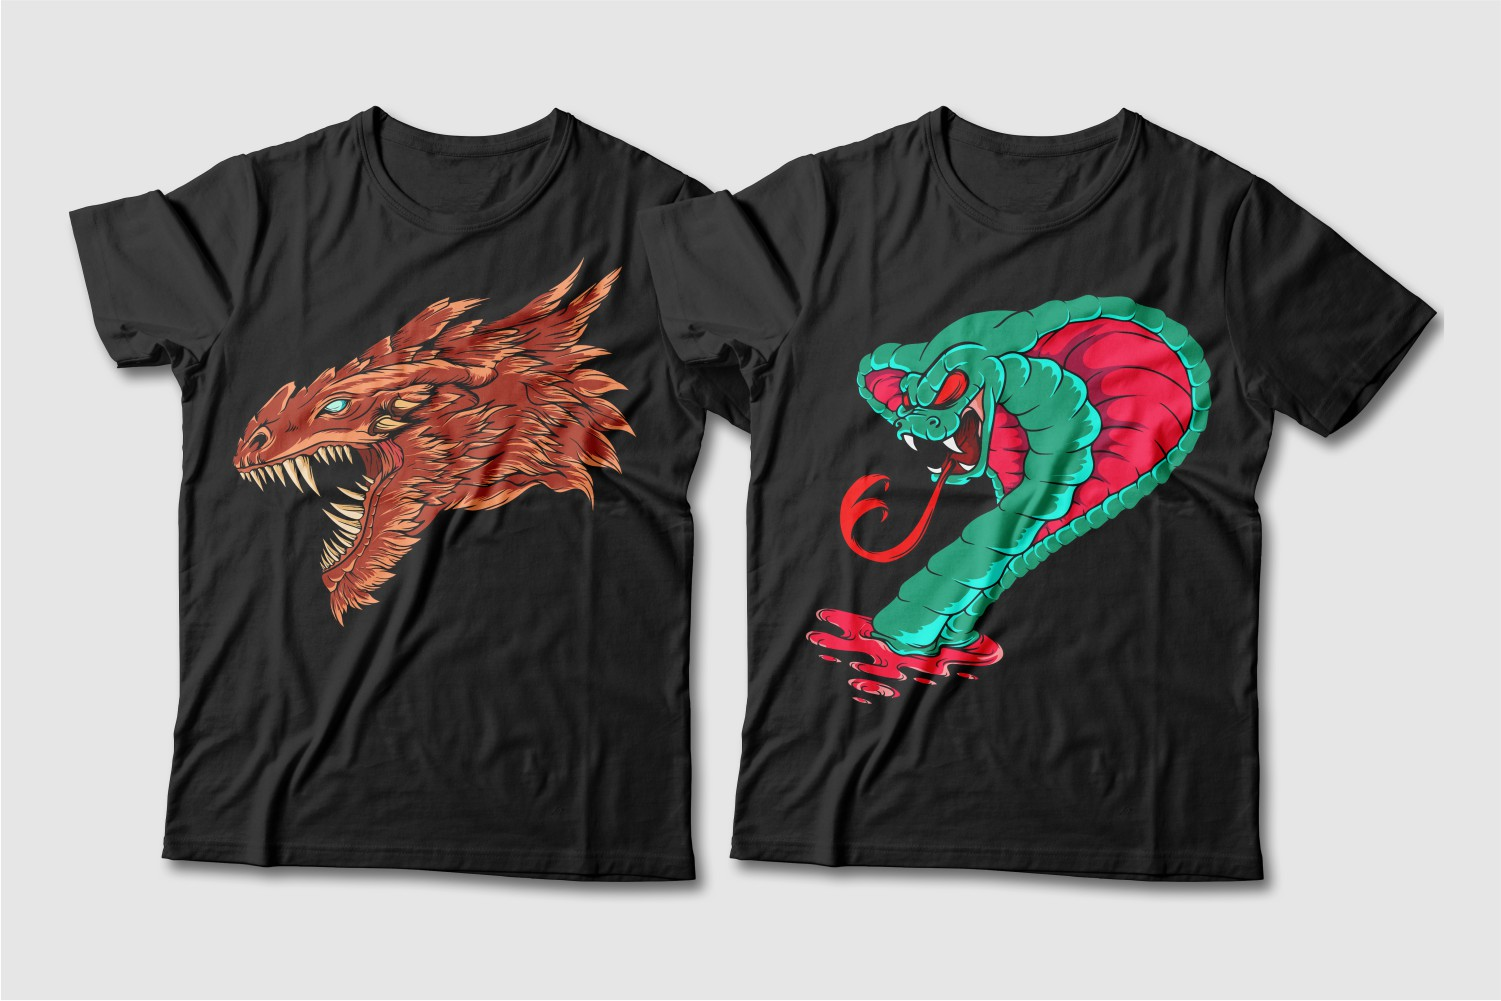 Black T-shirts featuring a brown dragon with green eyes and a green cobra.